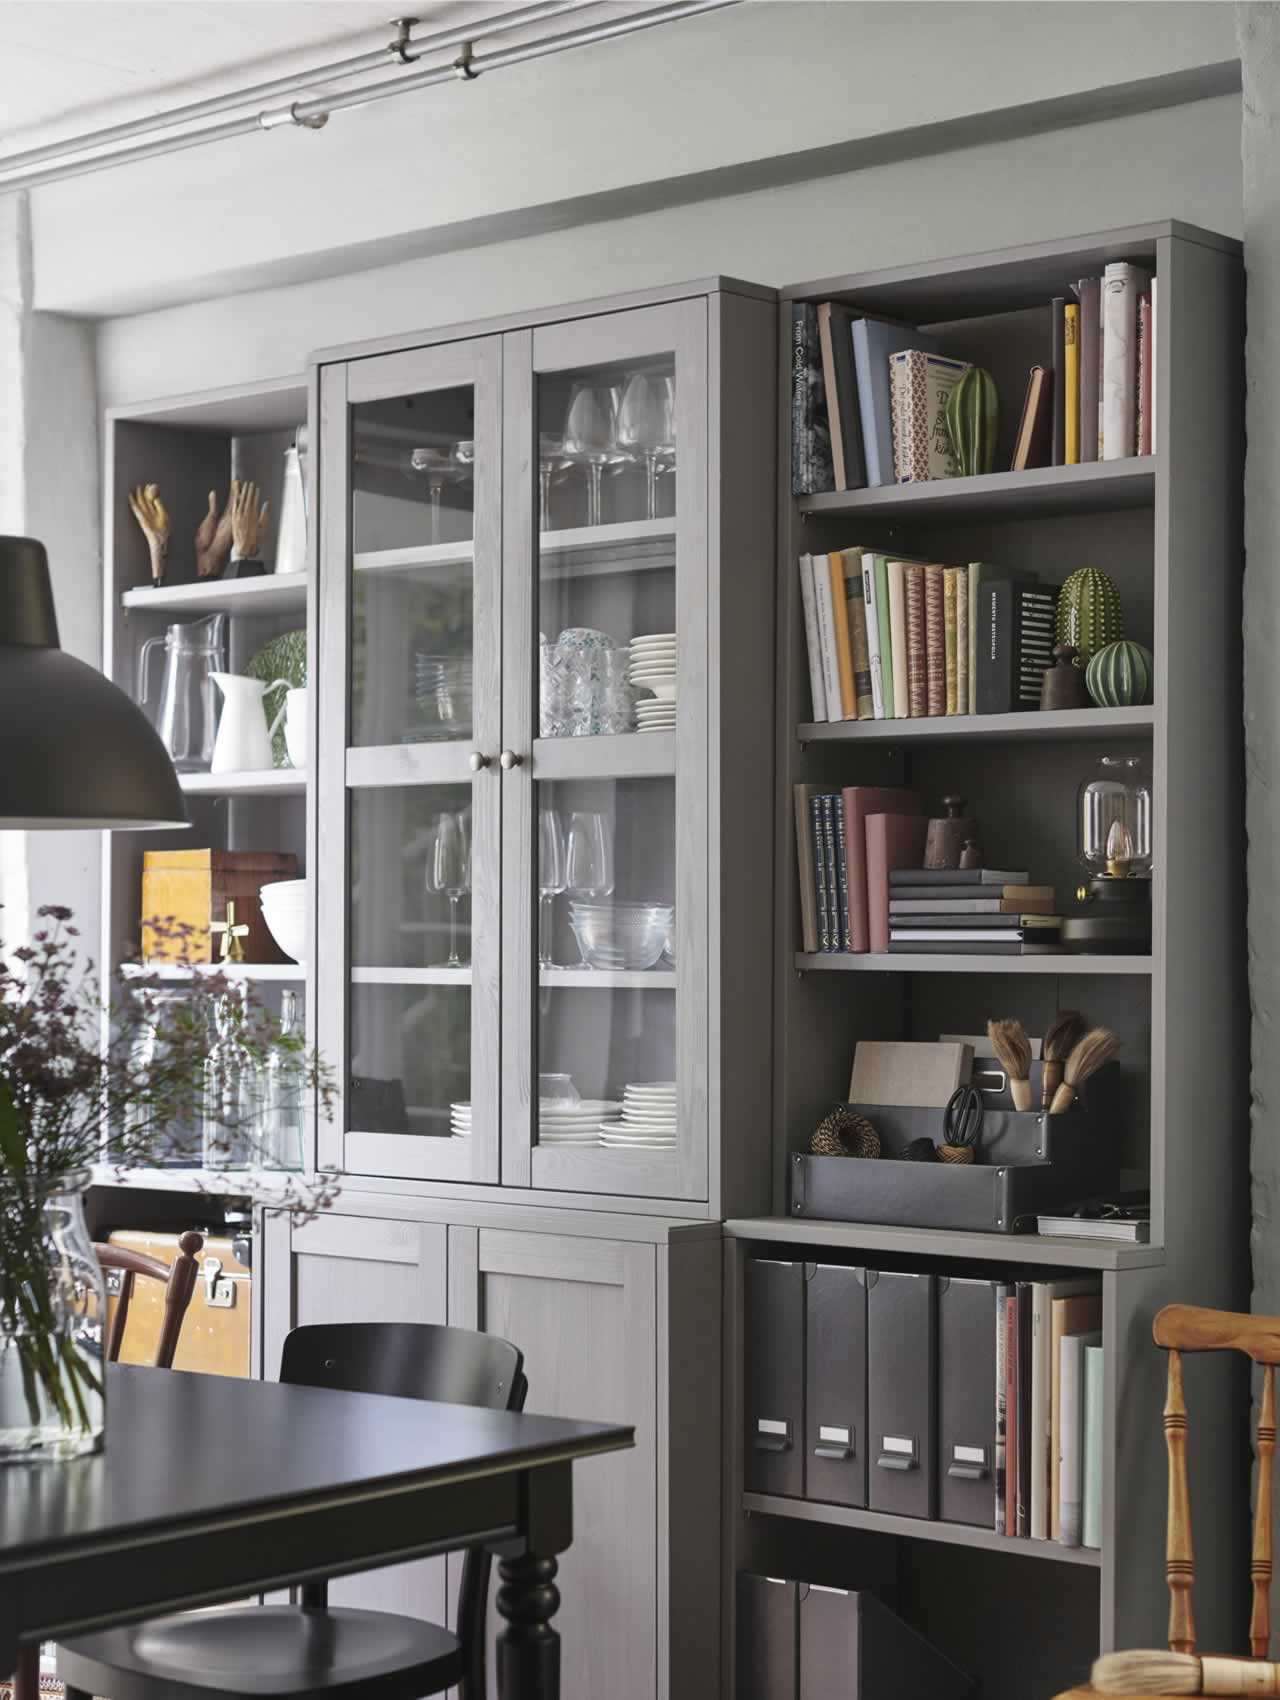 IKEA Ideas -  Space planning for a new life in an old house